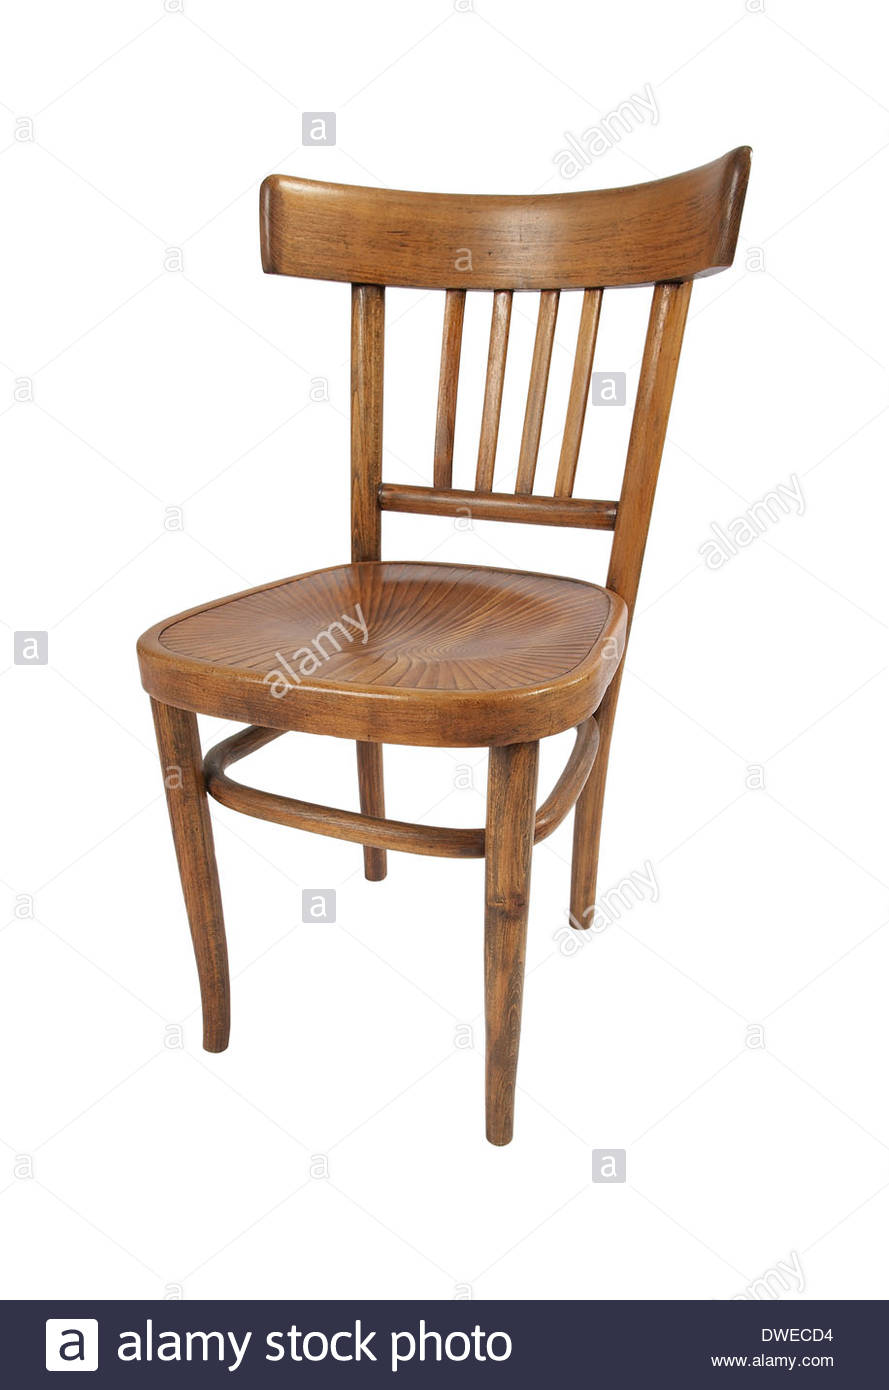 Dining Chair High Resolution Stock Photography and Images - Alamy